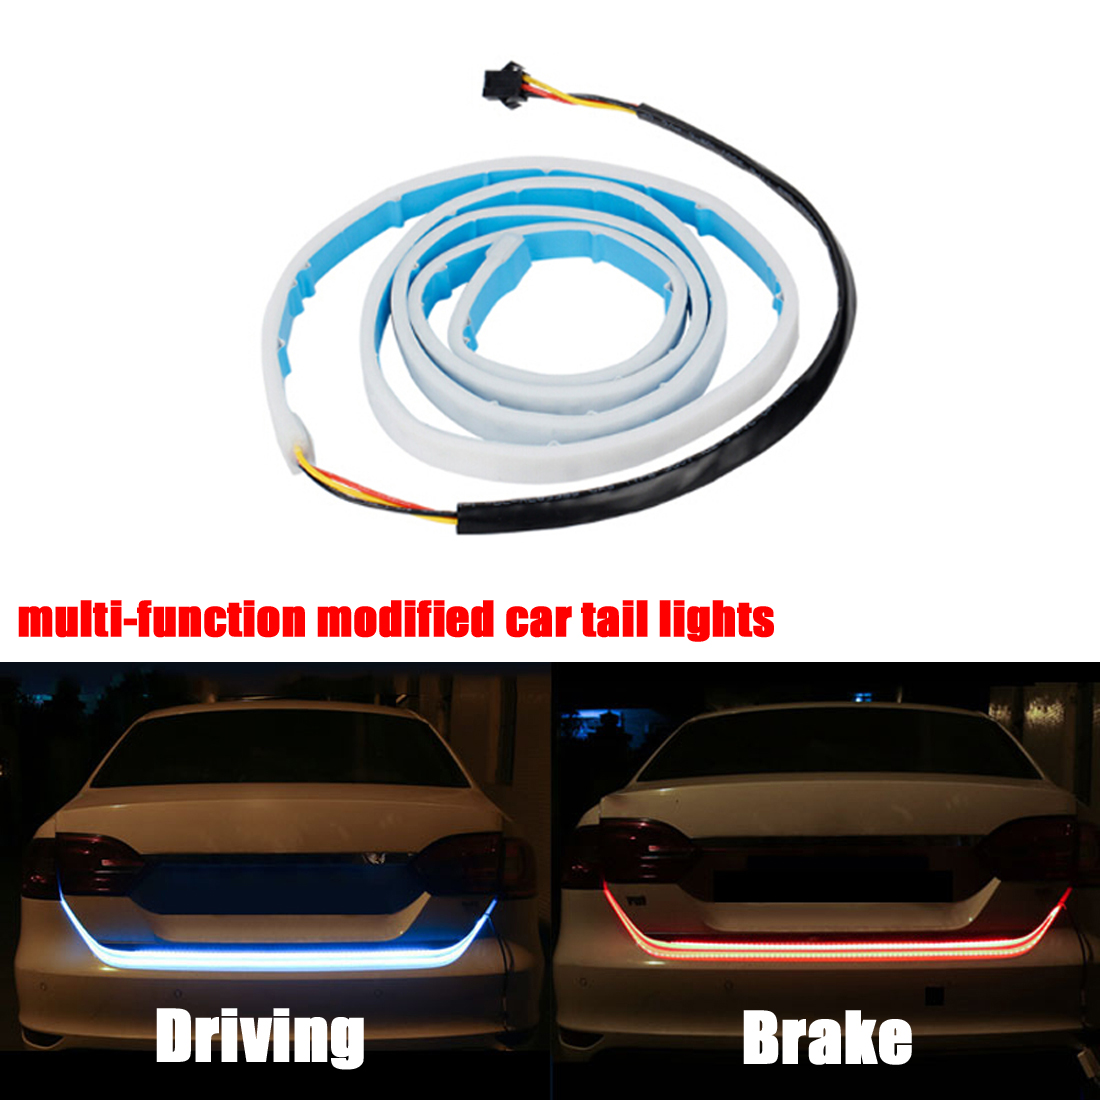 Dongzhen Waterproof Car LED 48 Trunk Van LED Strip Light Tailgate Turn Signal Reverse Backup Brake Lamp Car-styling car styling tail lights for toyota highlander 2015 led tail lamp rear trunk lamp cover drl signal brake reverse